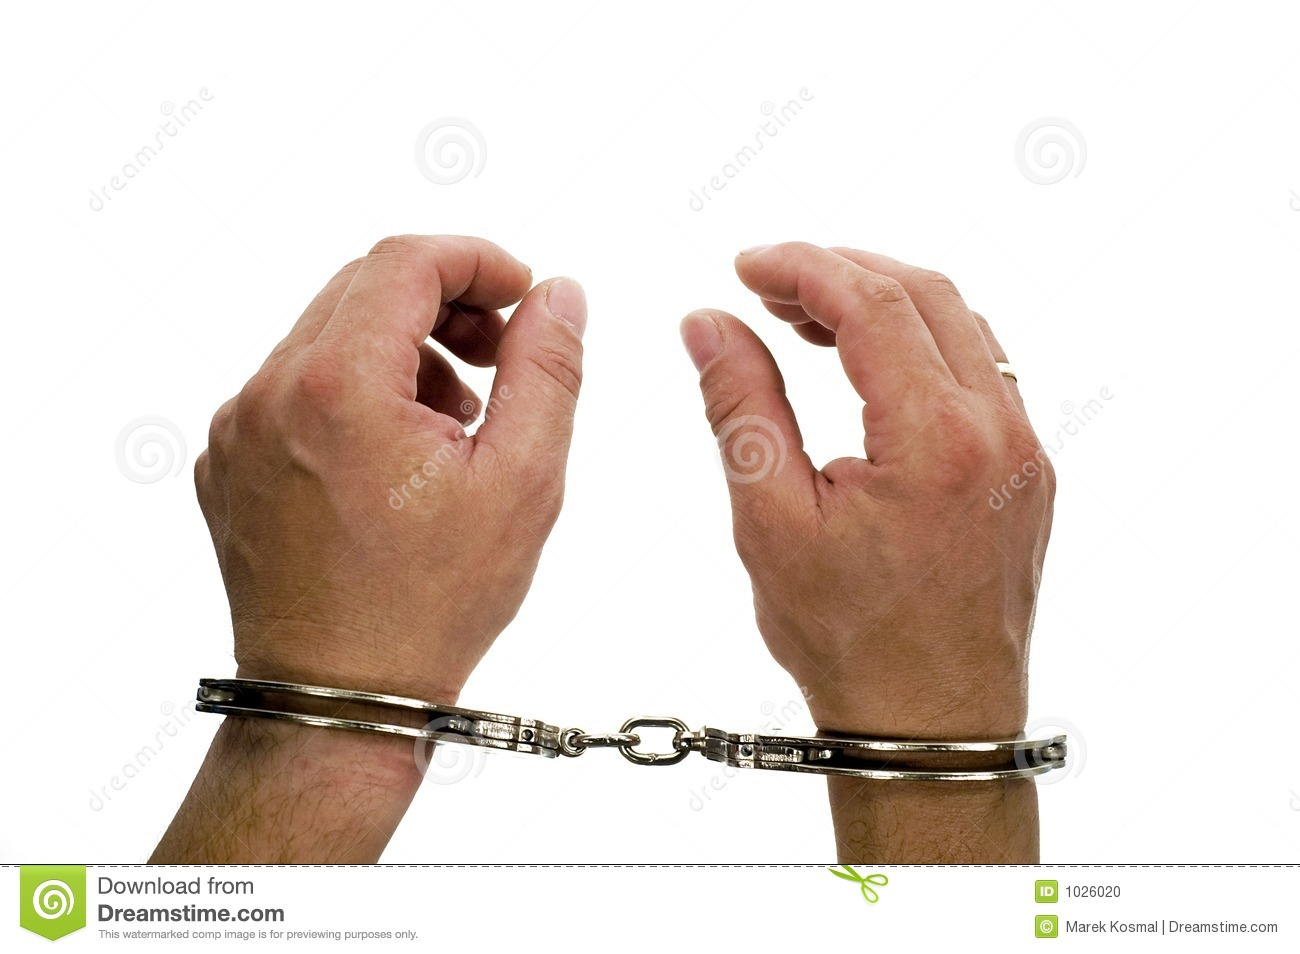 Original handcuffs on hands on white backgroung.